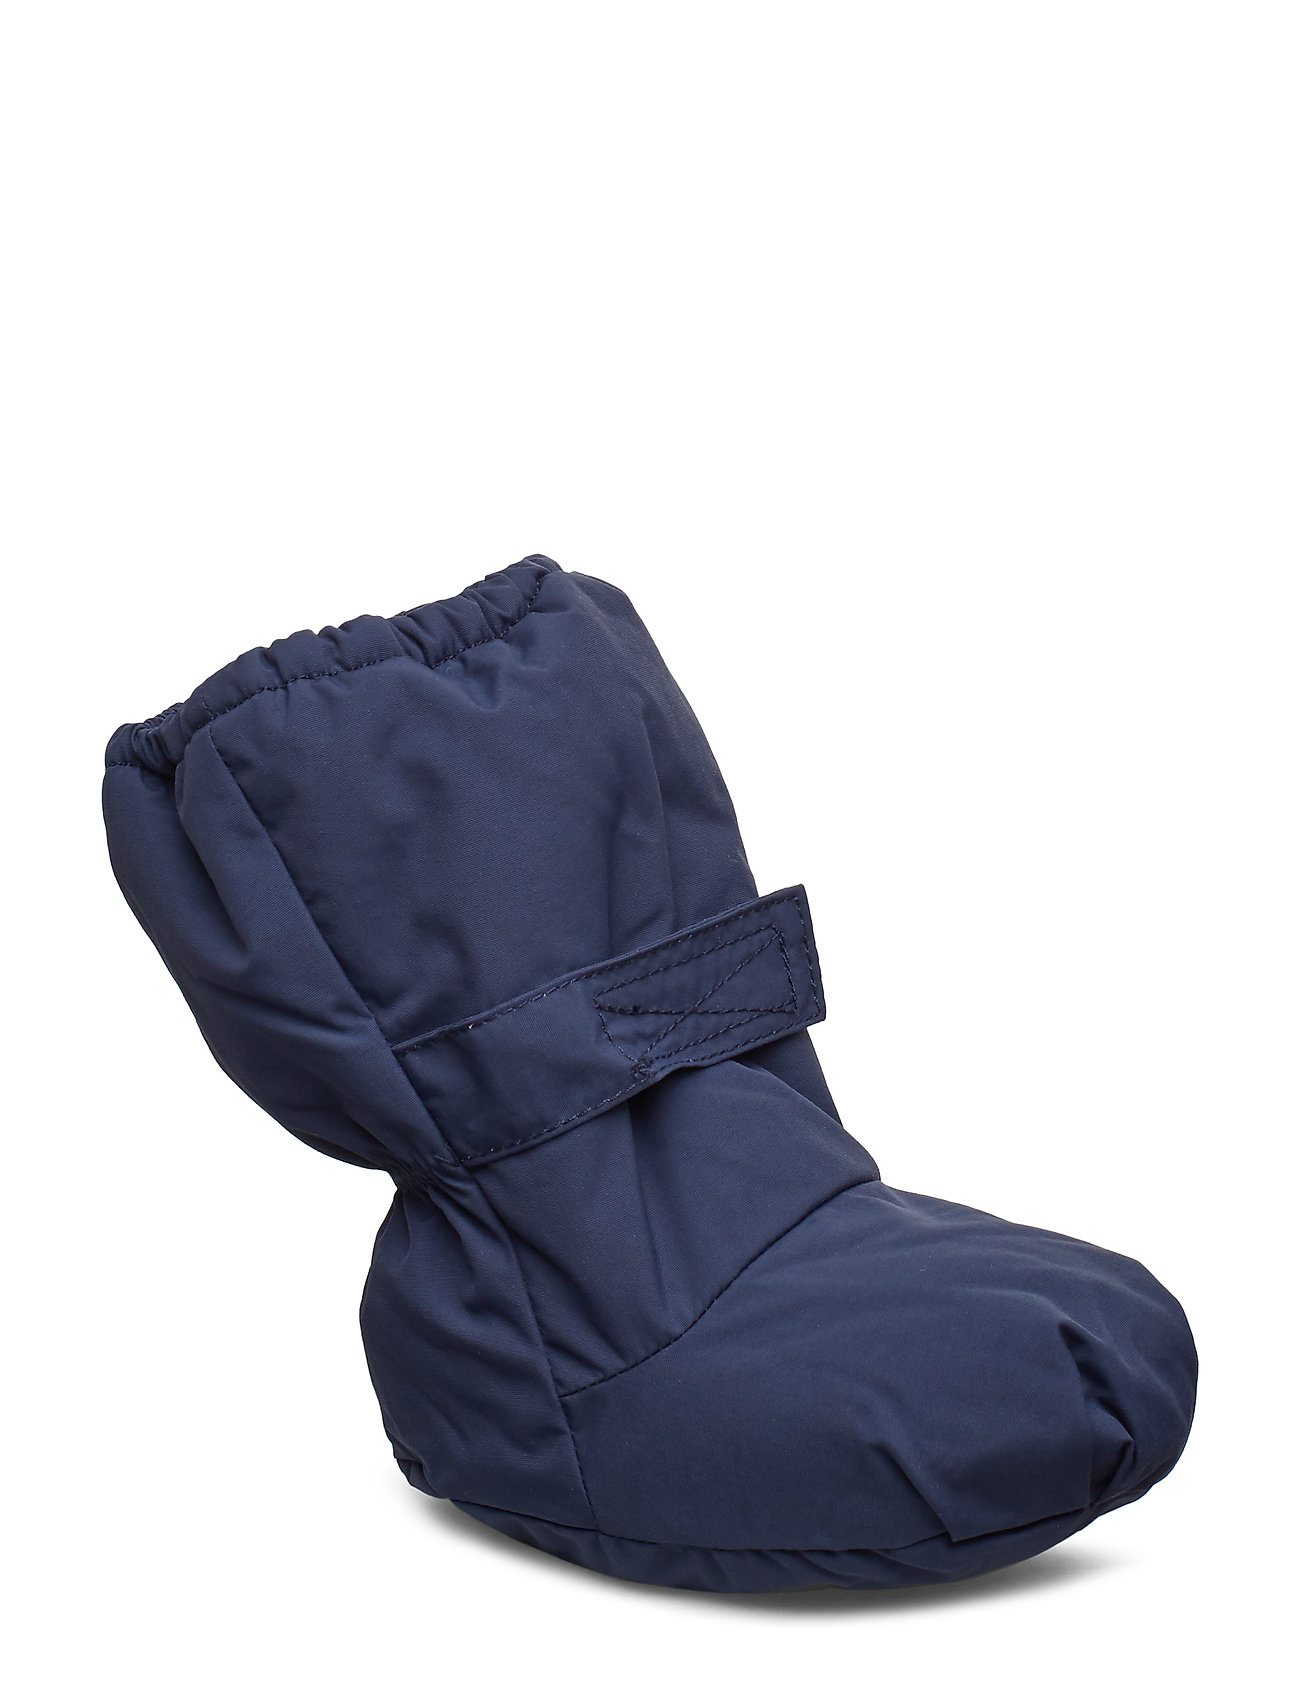 Mini A Ture Winn Outdoor Sock, B - PEACOAT BLUE